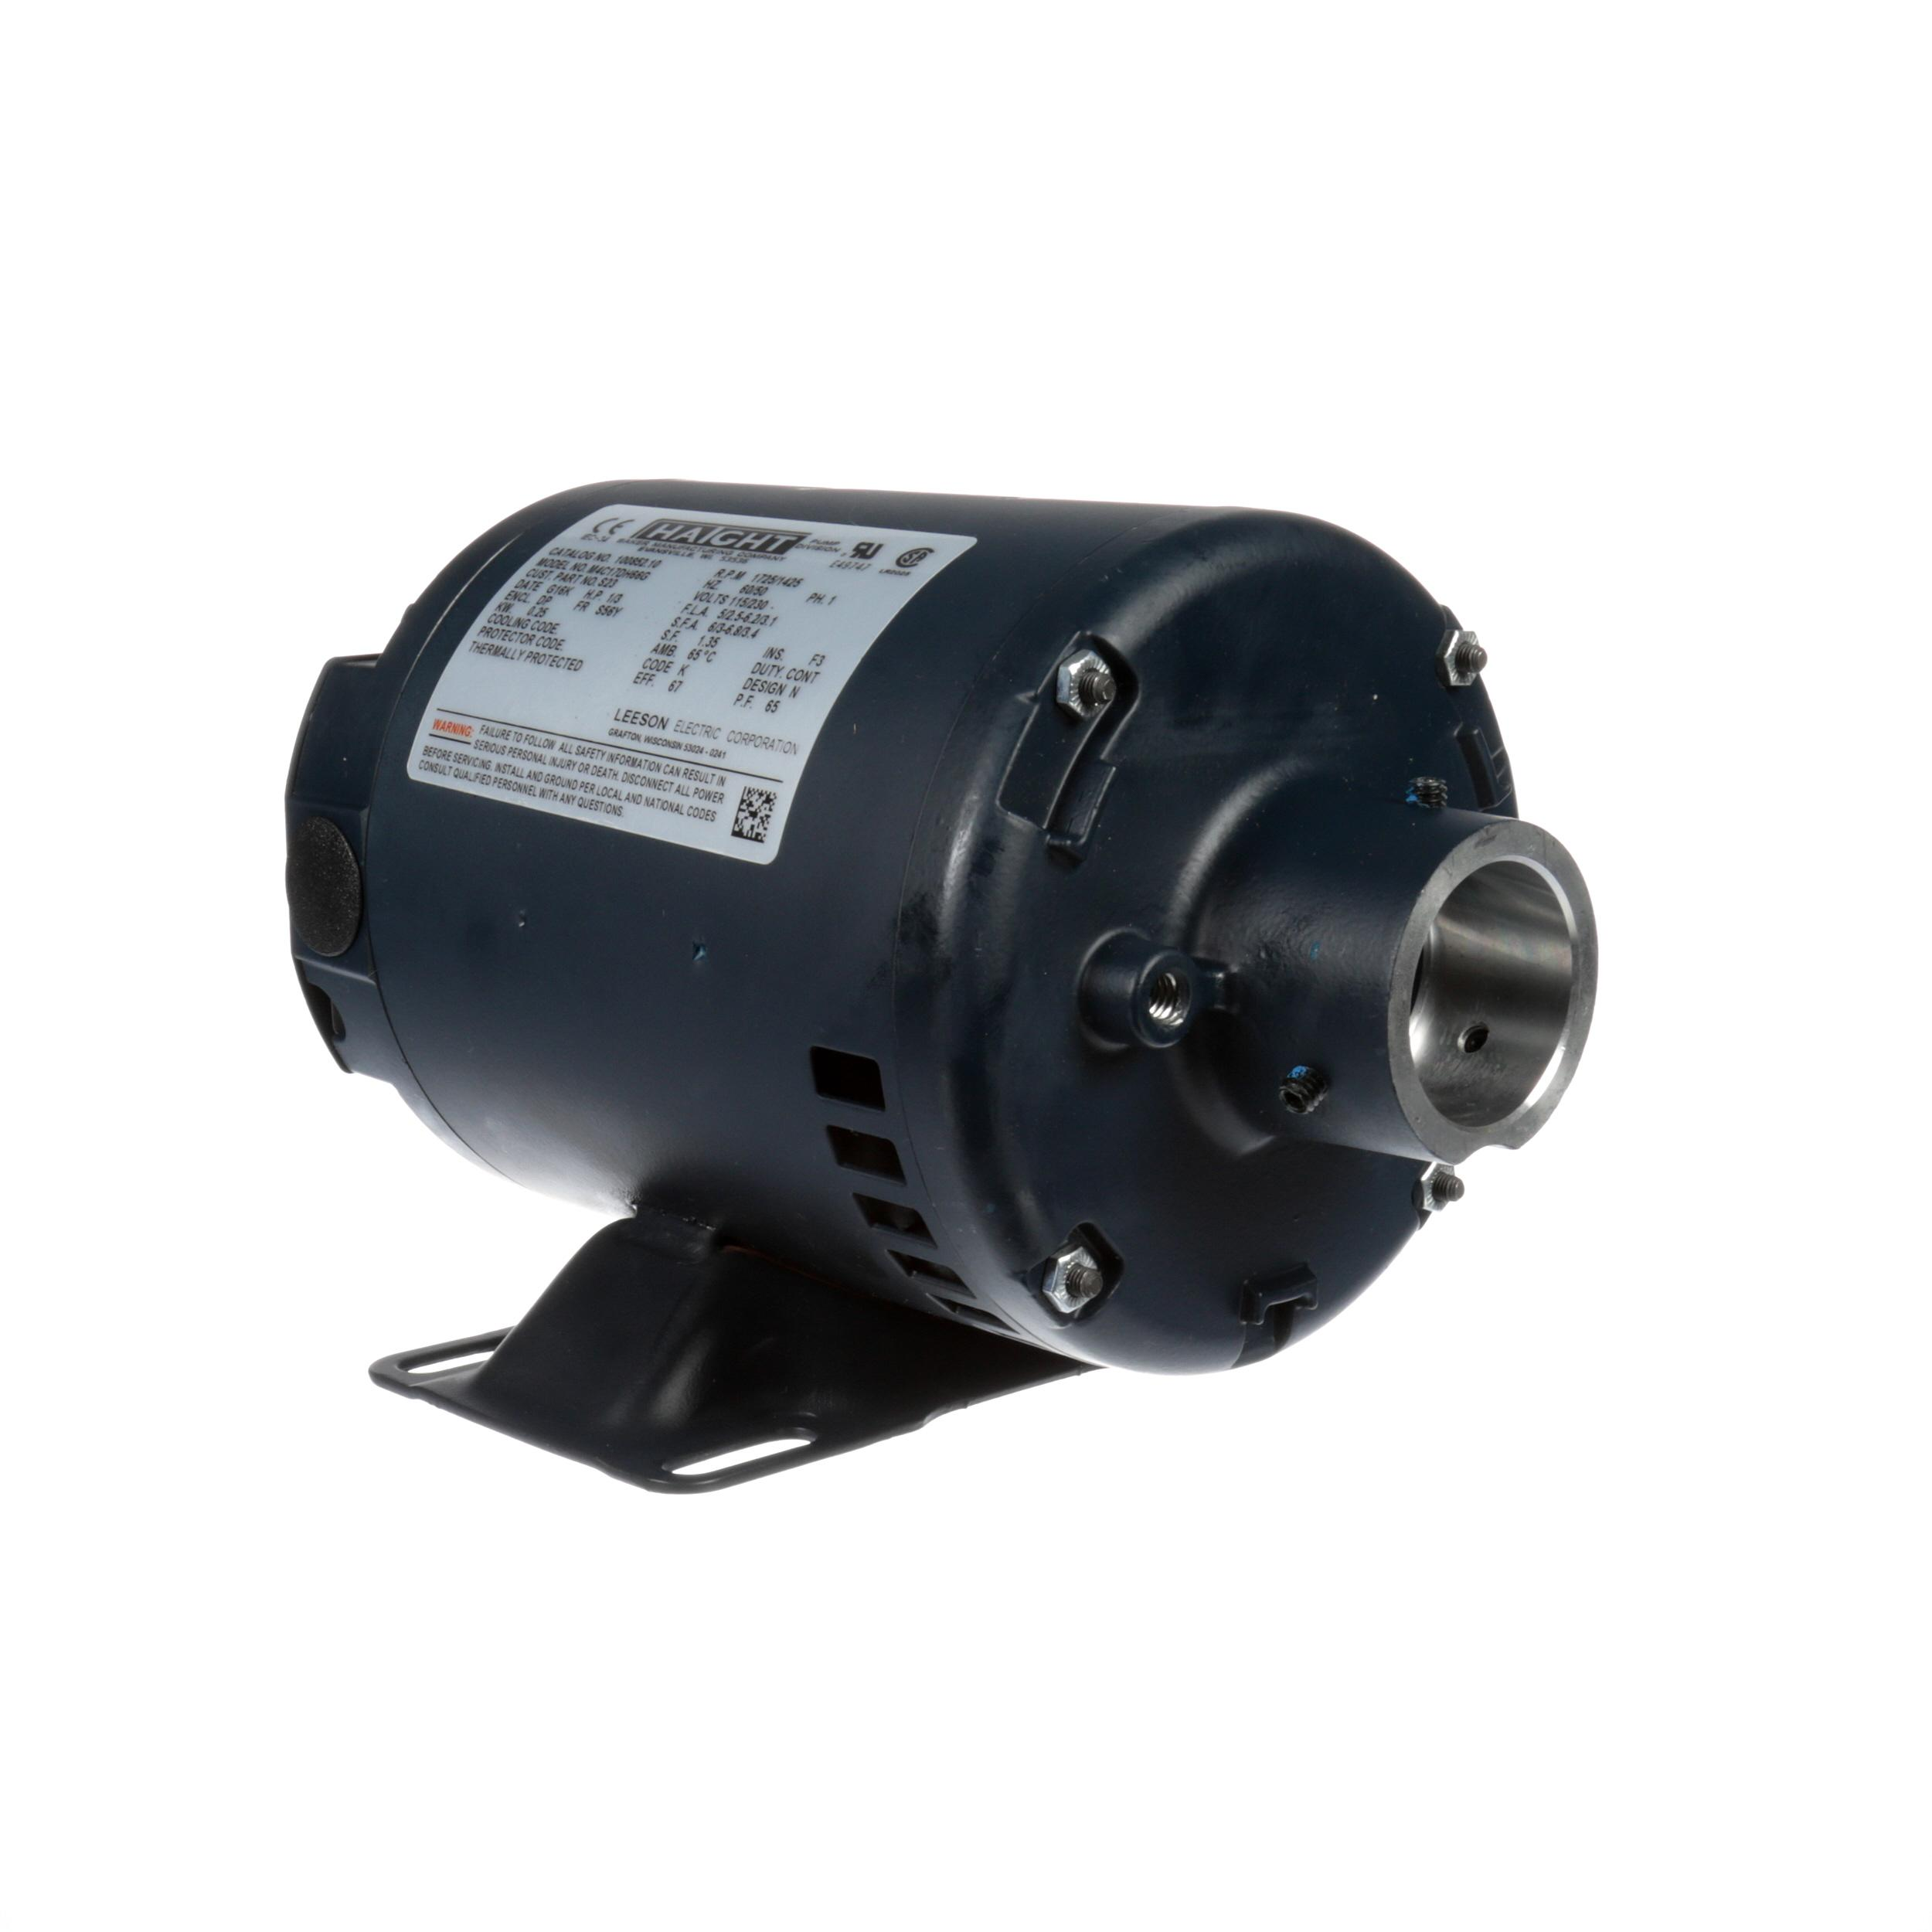 Frymaster Motor Pump 120 230v 1 3 Hp Part 8102100